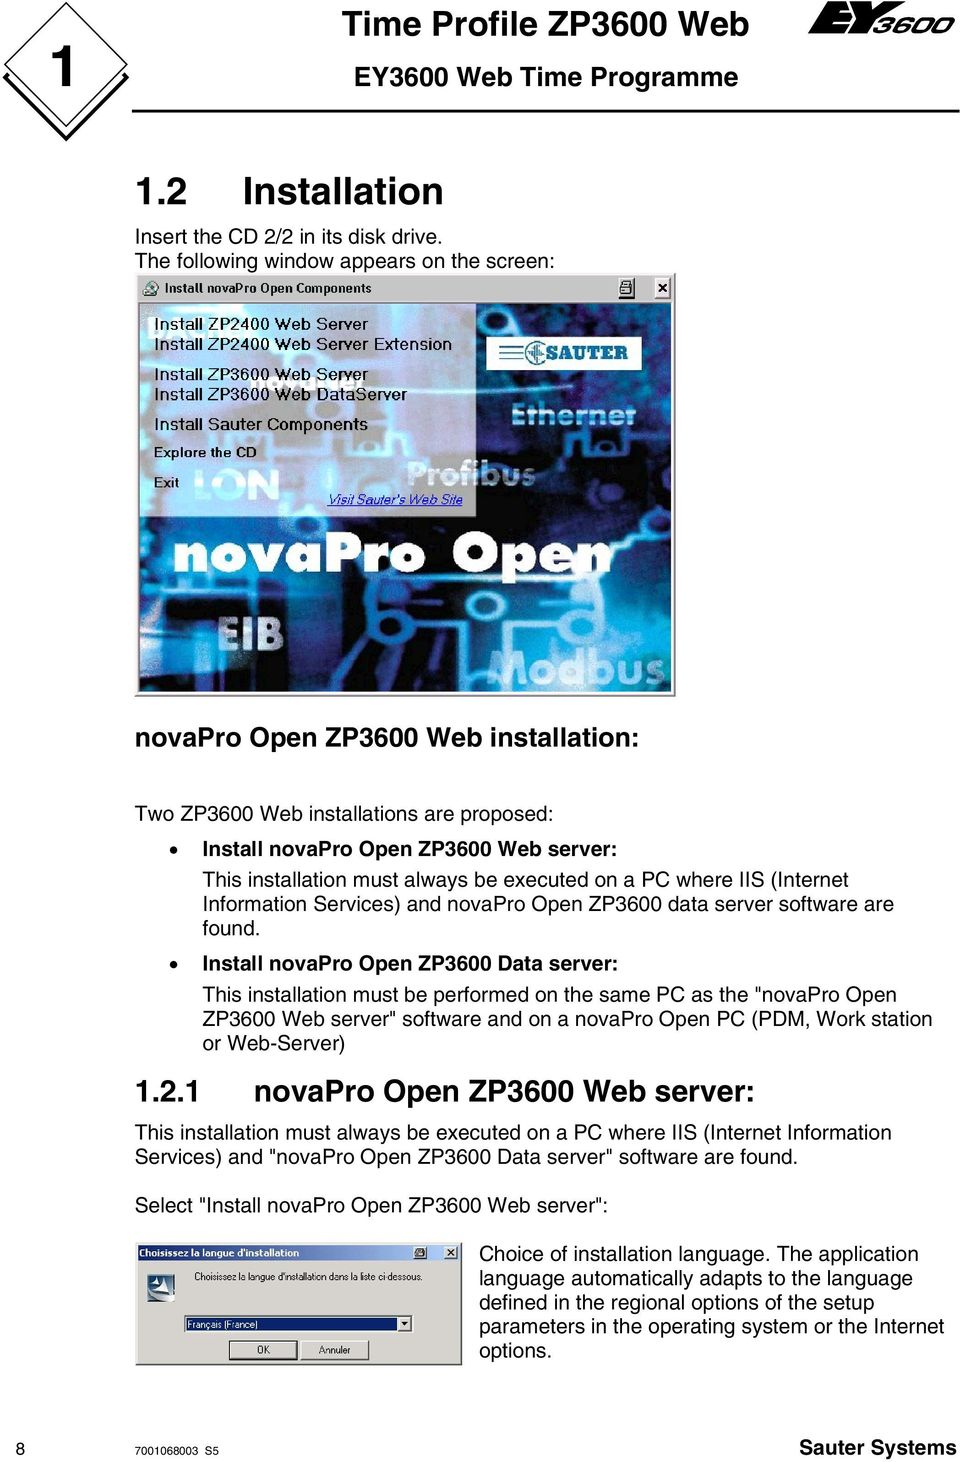 executed on a PC where IIS (Internet Information Services) and novapro Open ZP3600 data server software are found.